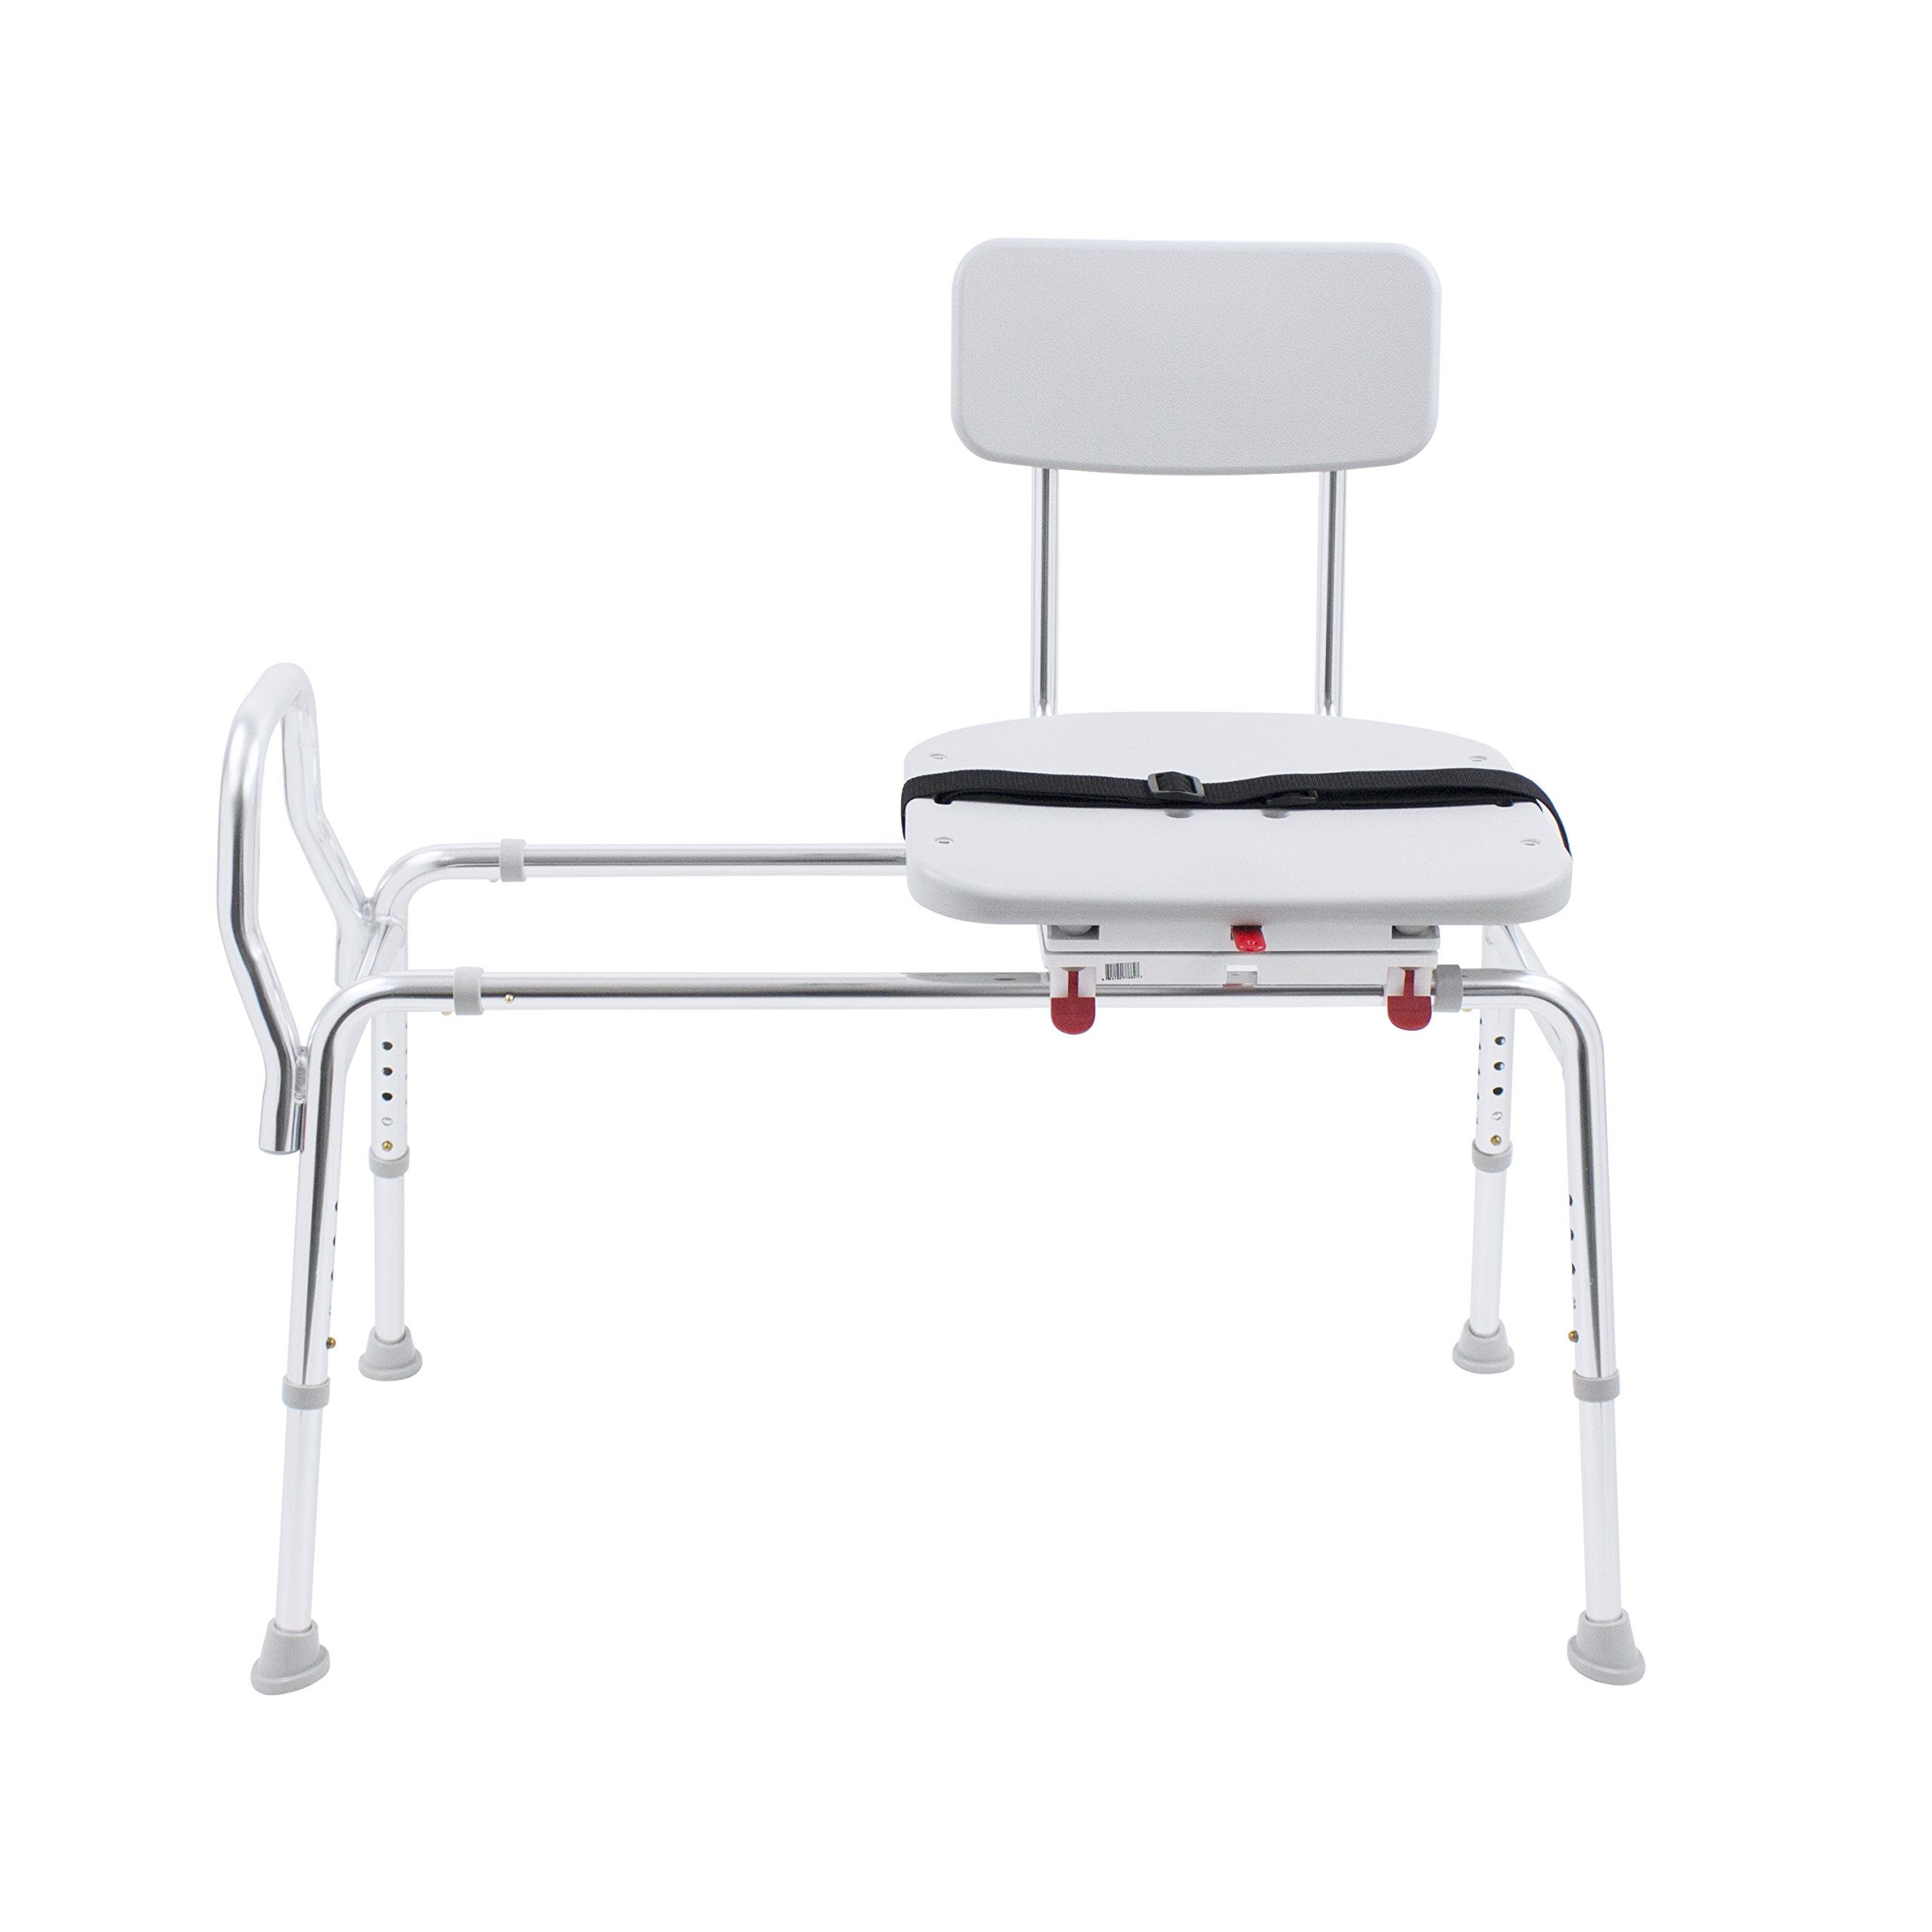 Eagle Health Supplies Swivel Sliding Shower Transfer Bench with Adjustable Height, No Tool Assembly by Eagle Health Supplies (Image #3)